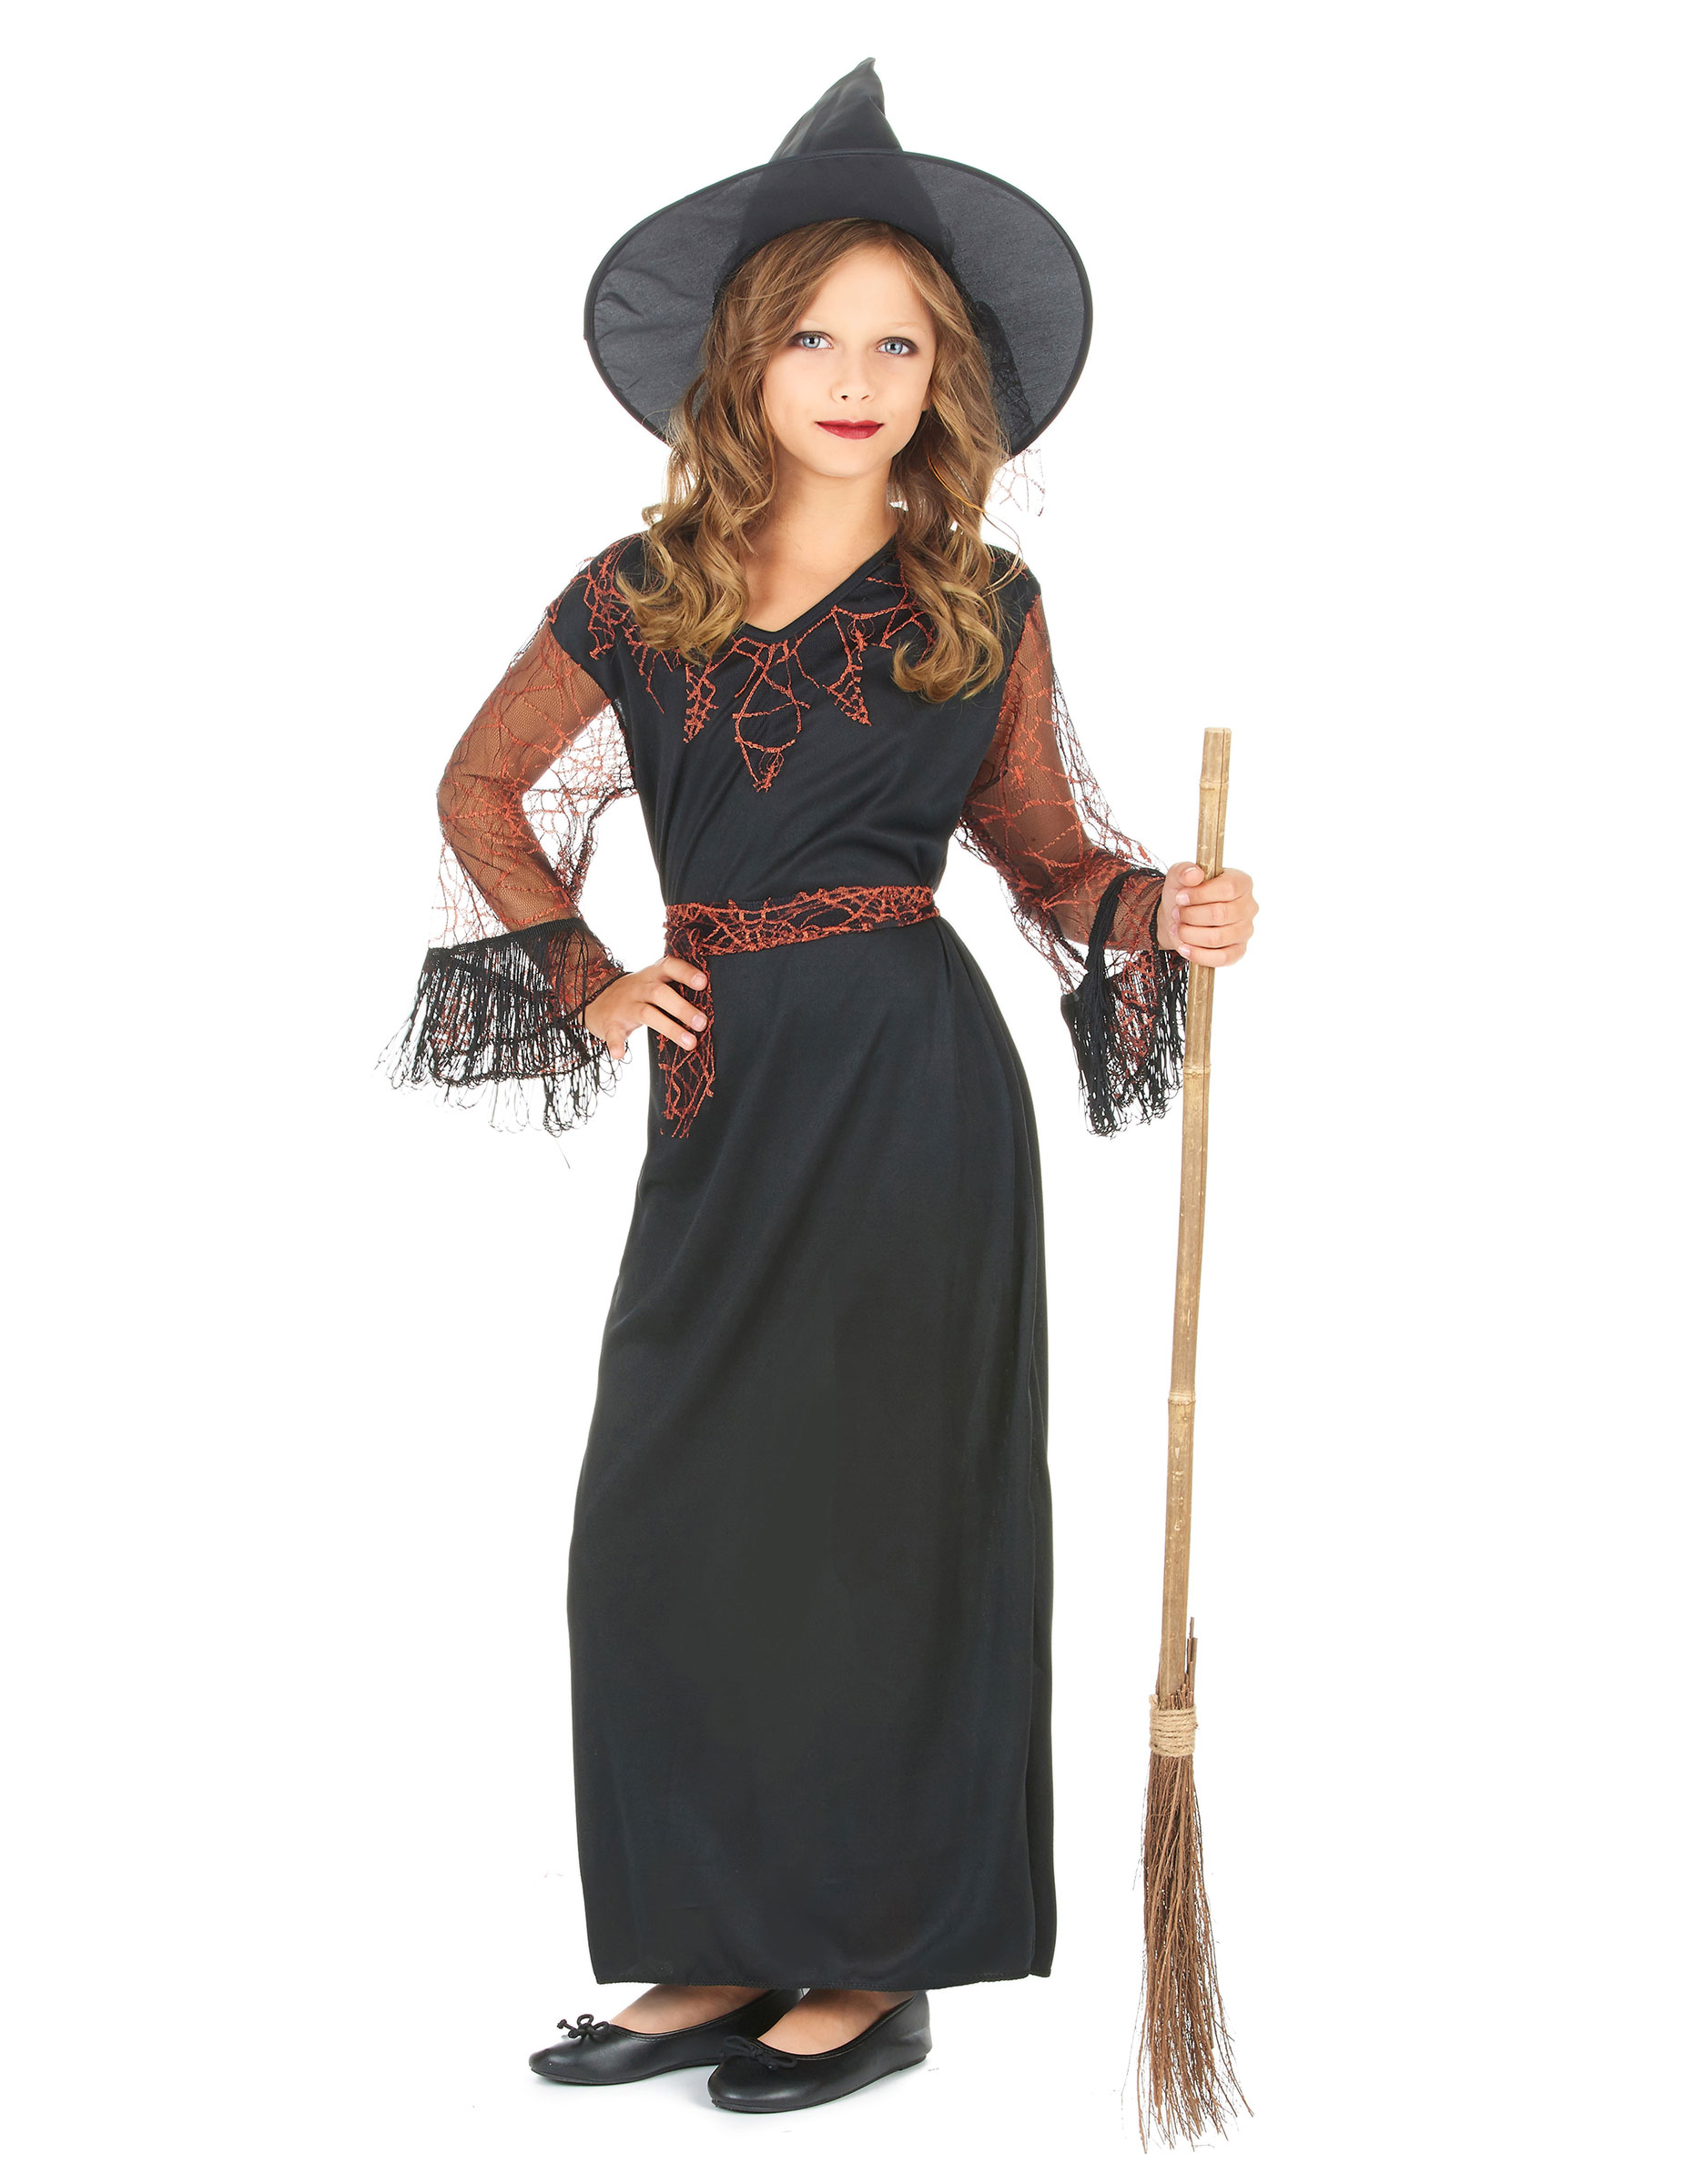 D guisement sorci re noir fille halloween achat de - Deguisement fille halloween ...